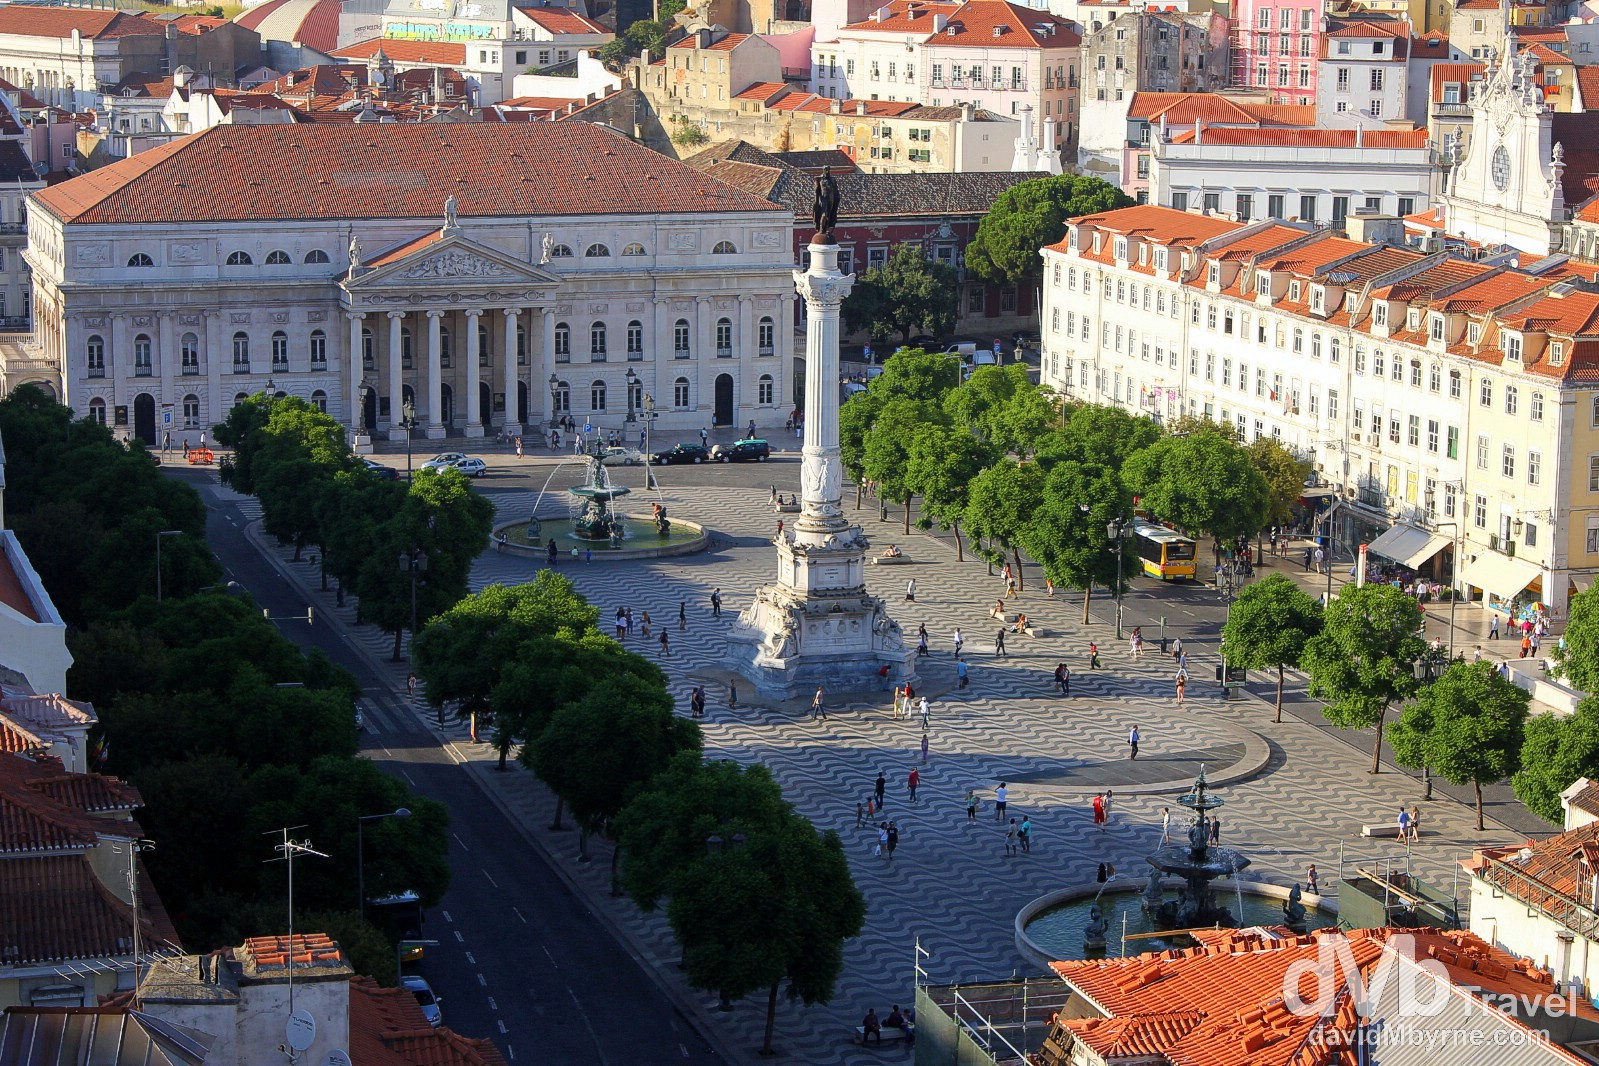 Praça de D. Pedro IV (Rossio Square) as seen from atop the Santa Justa Lift, Lisbon, Portugal. August 26th 2013.